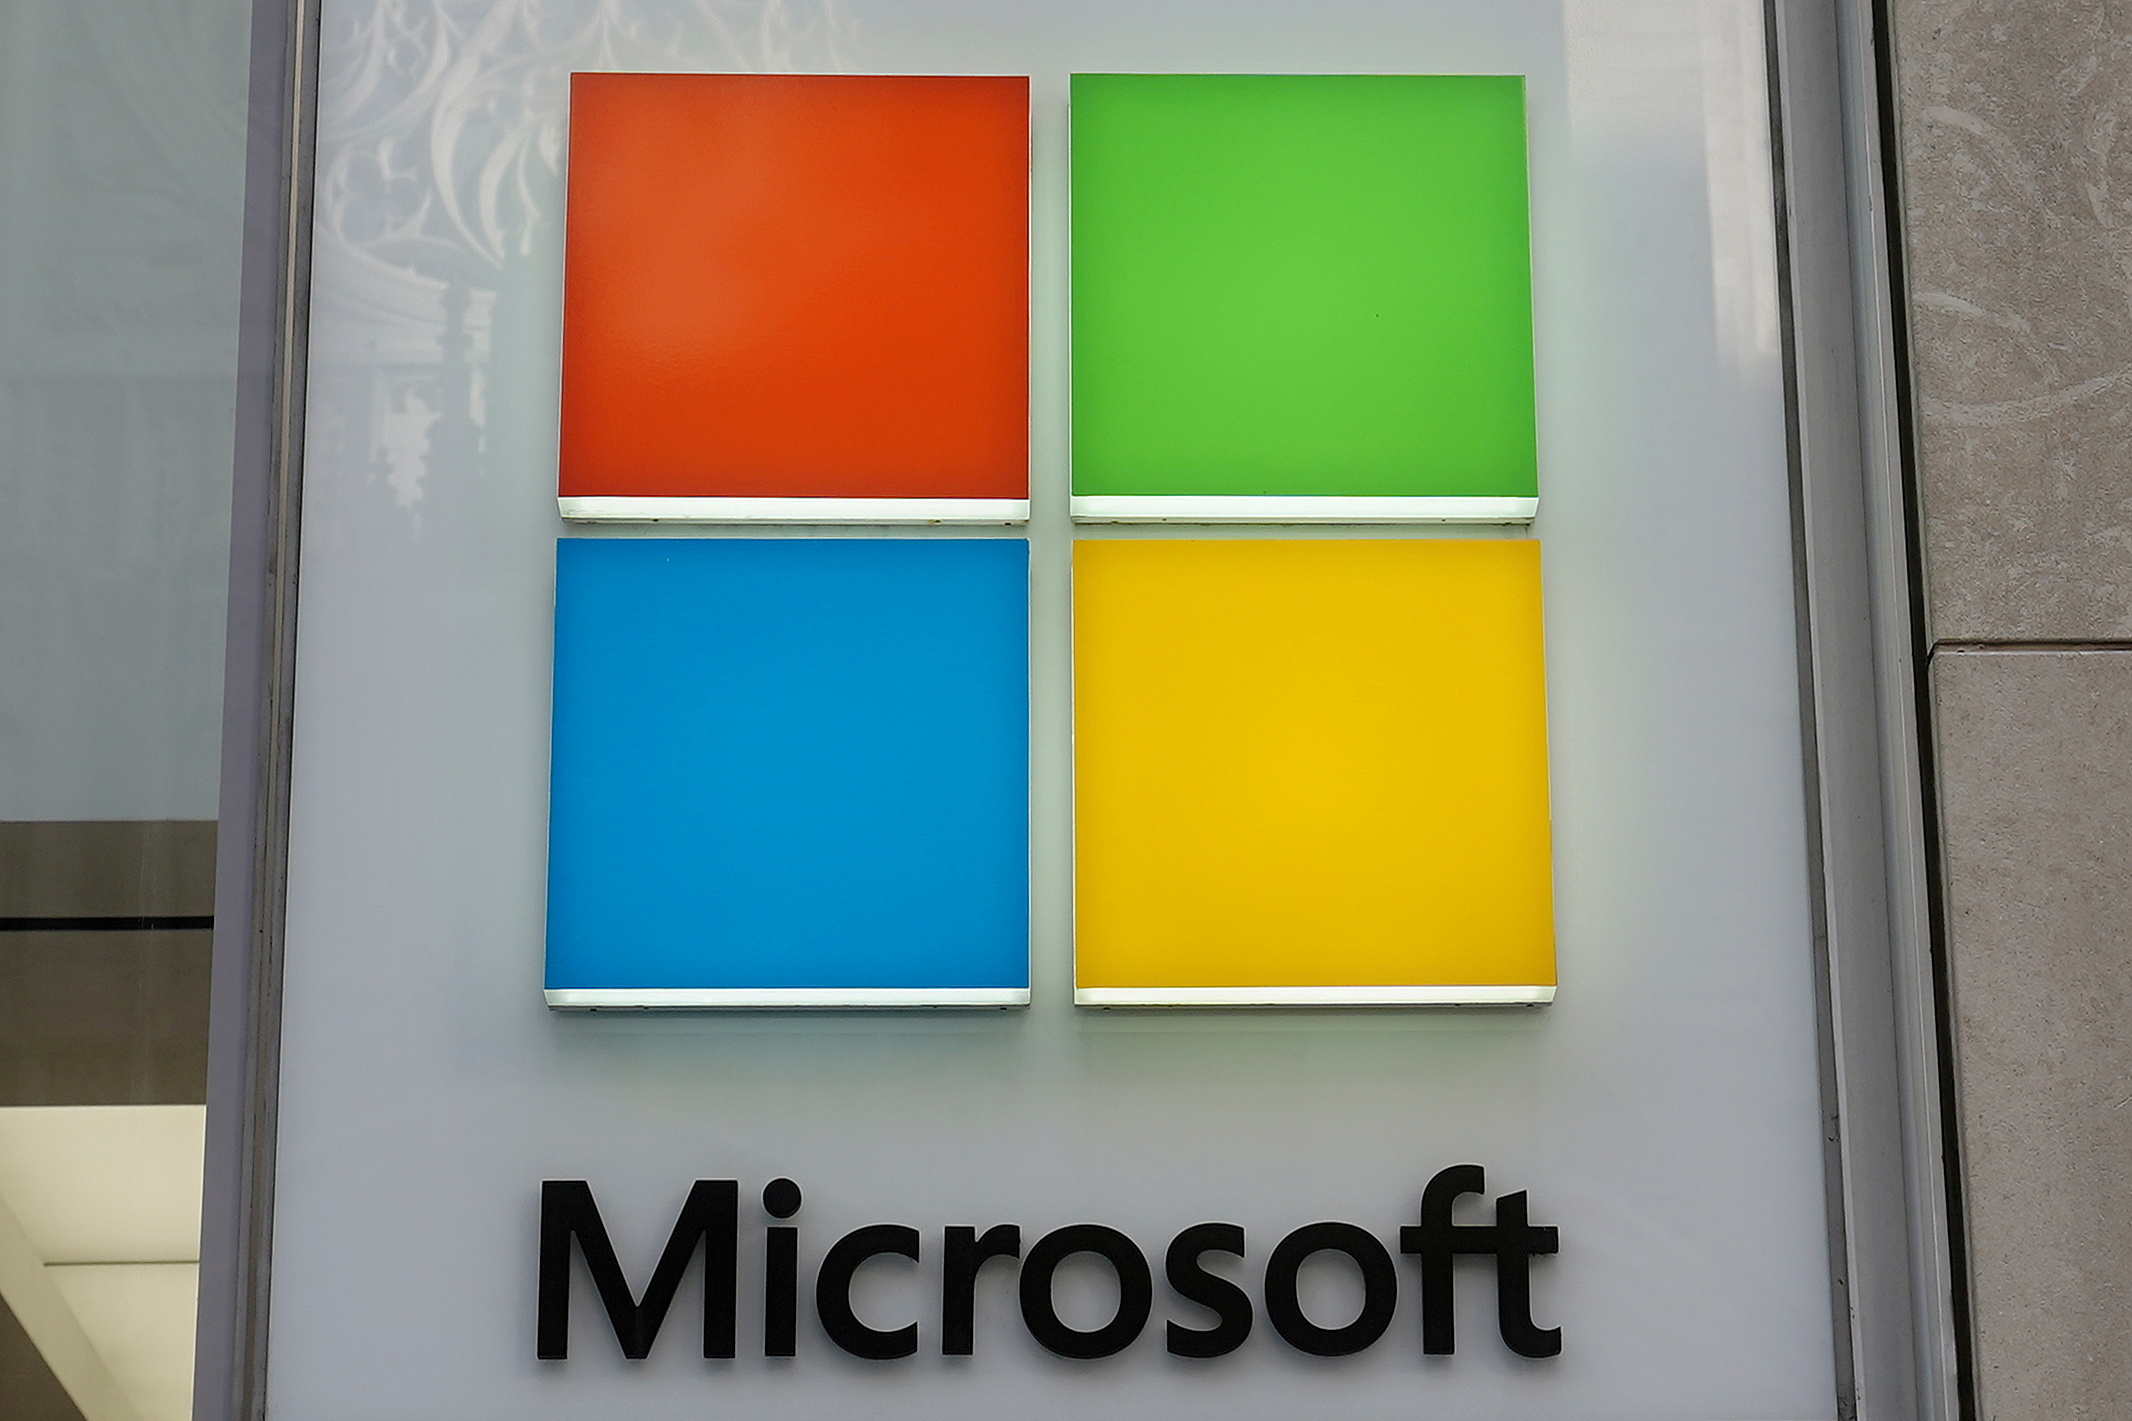 A Microsoft logo on a store in the Manhattan borough of New York City, New York, January  25, 2021. REUTERS/Carlo Allegri